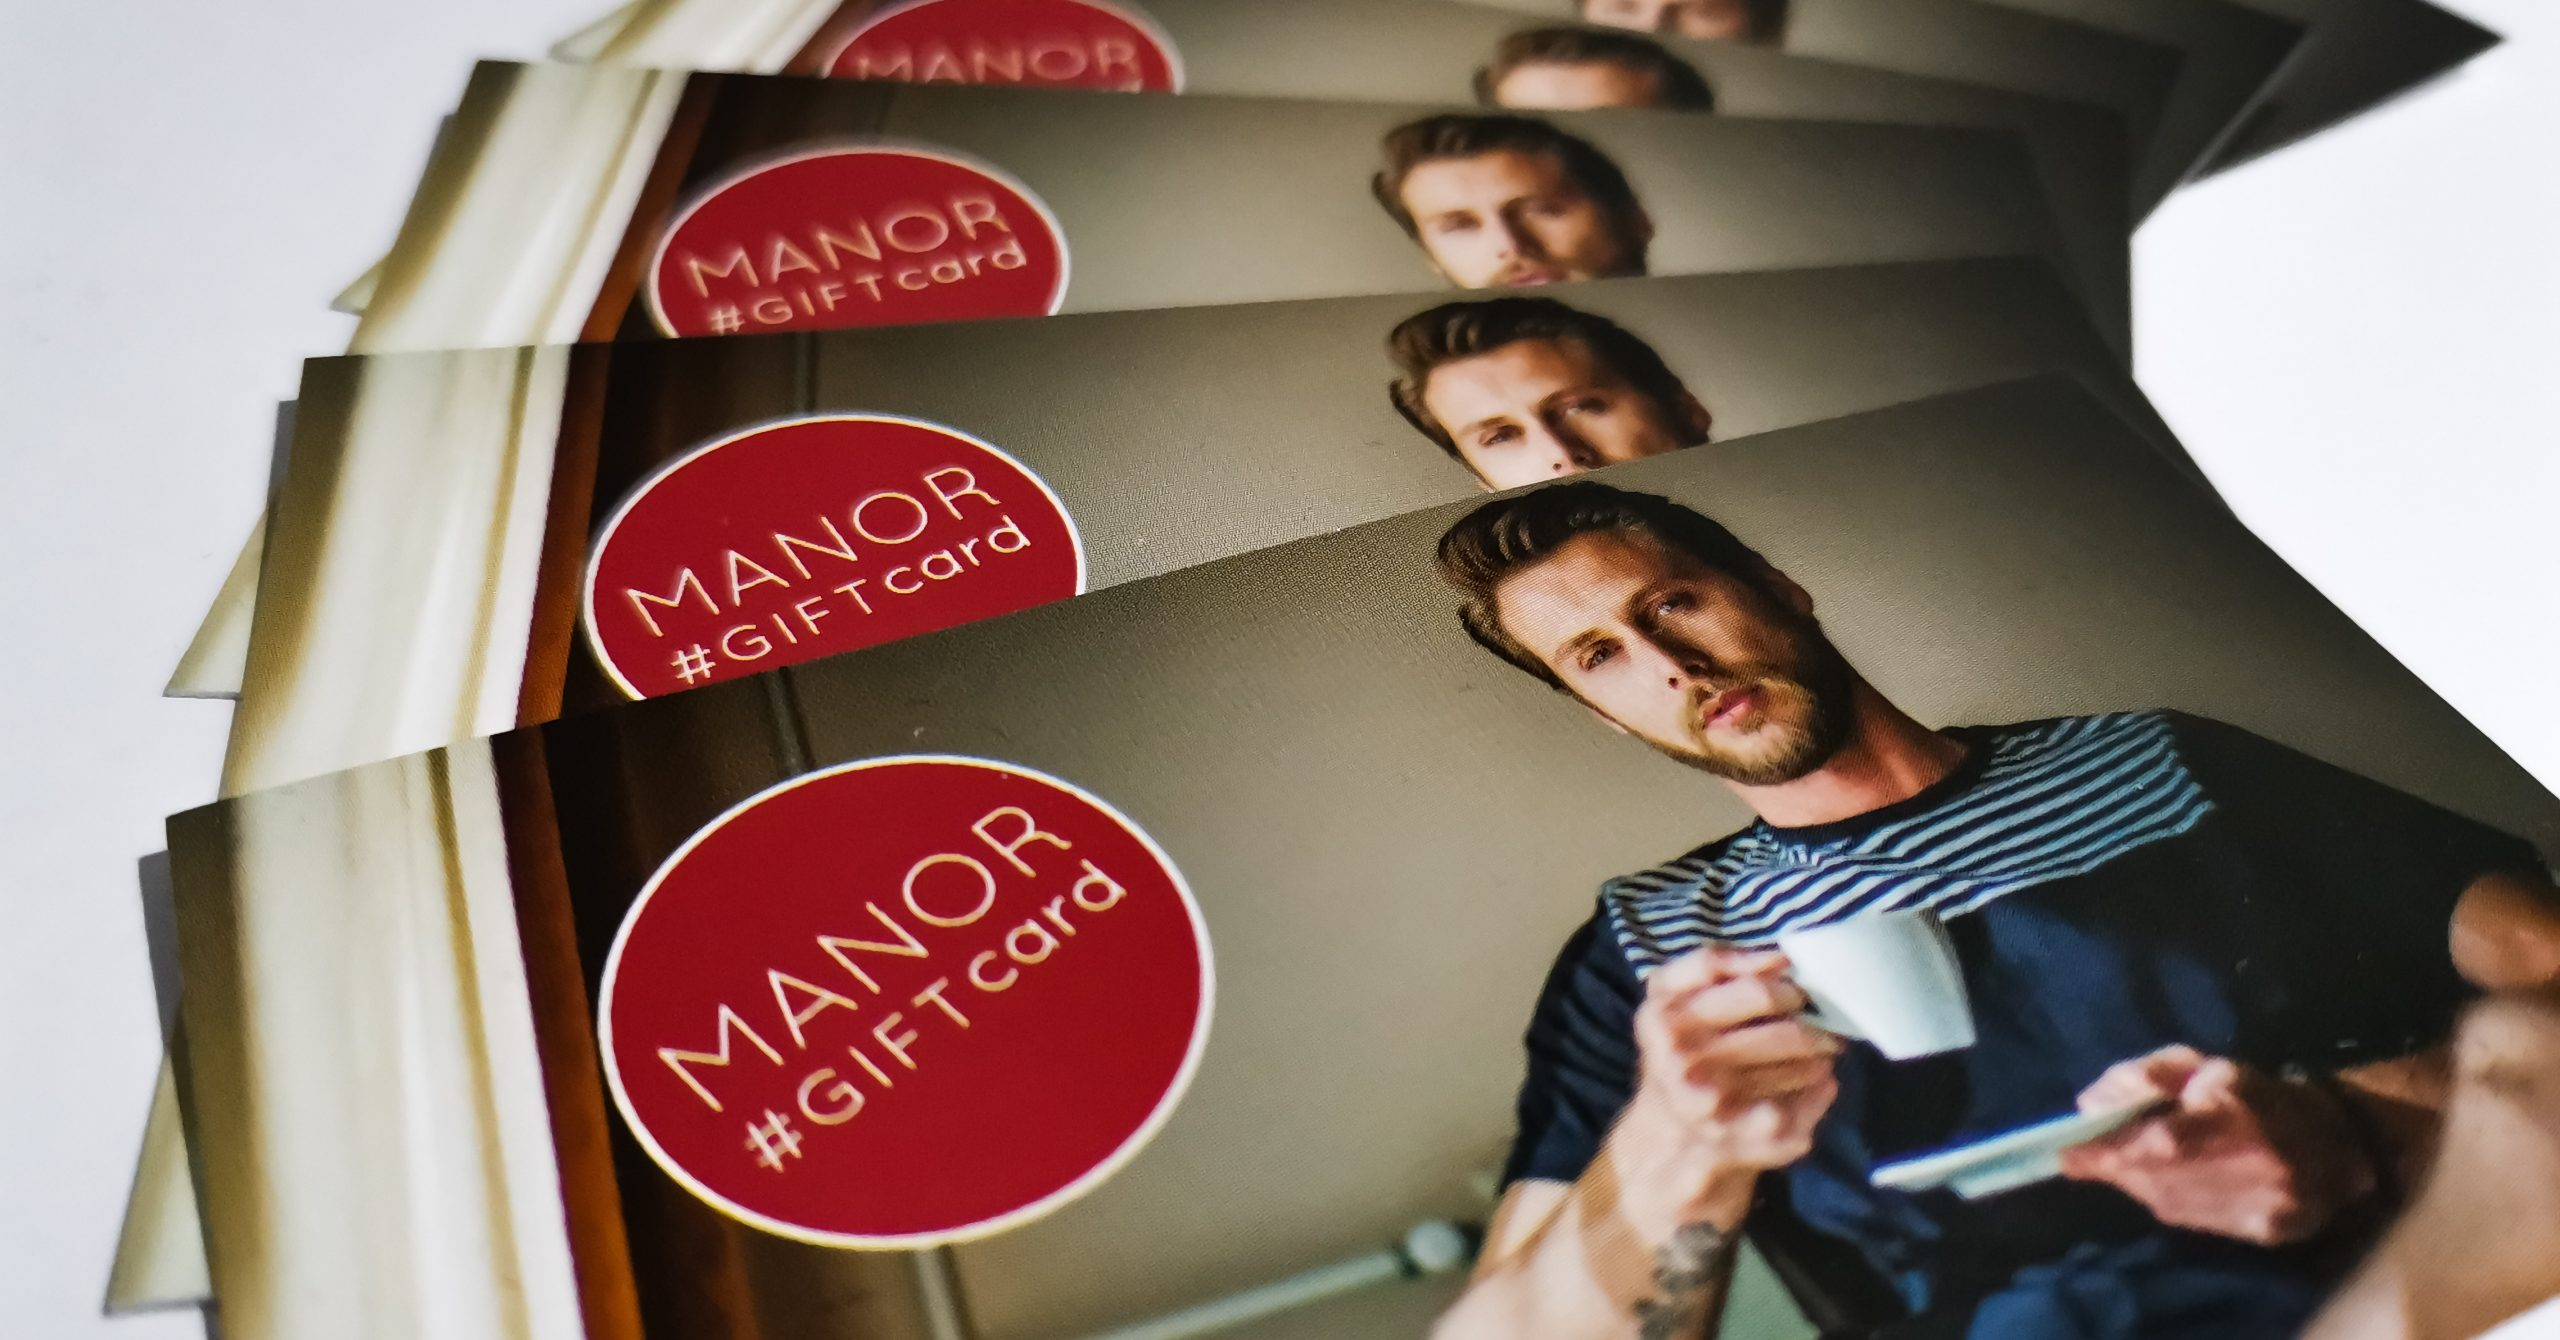 Manor underwear Giftcard